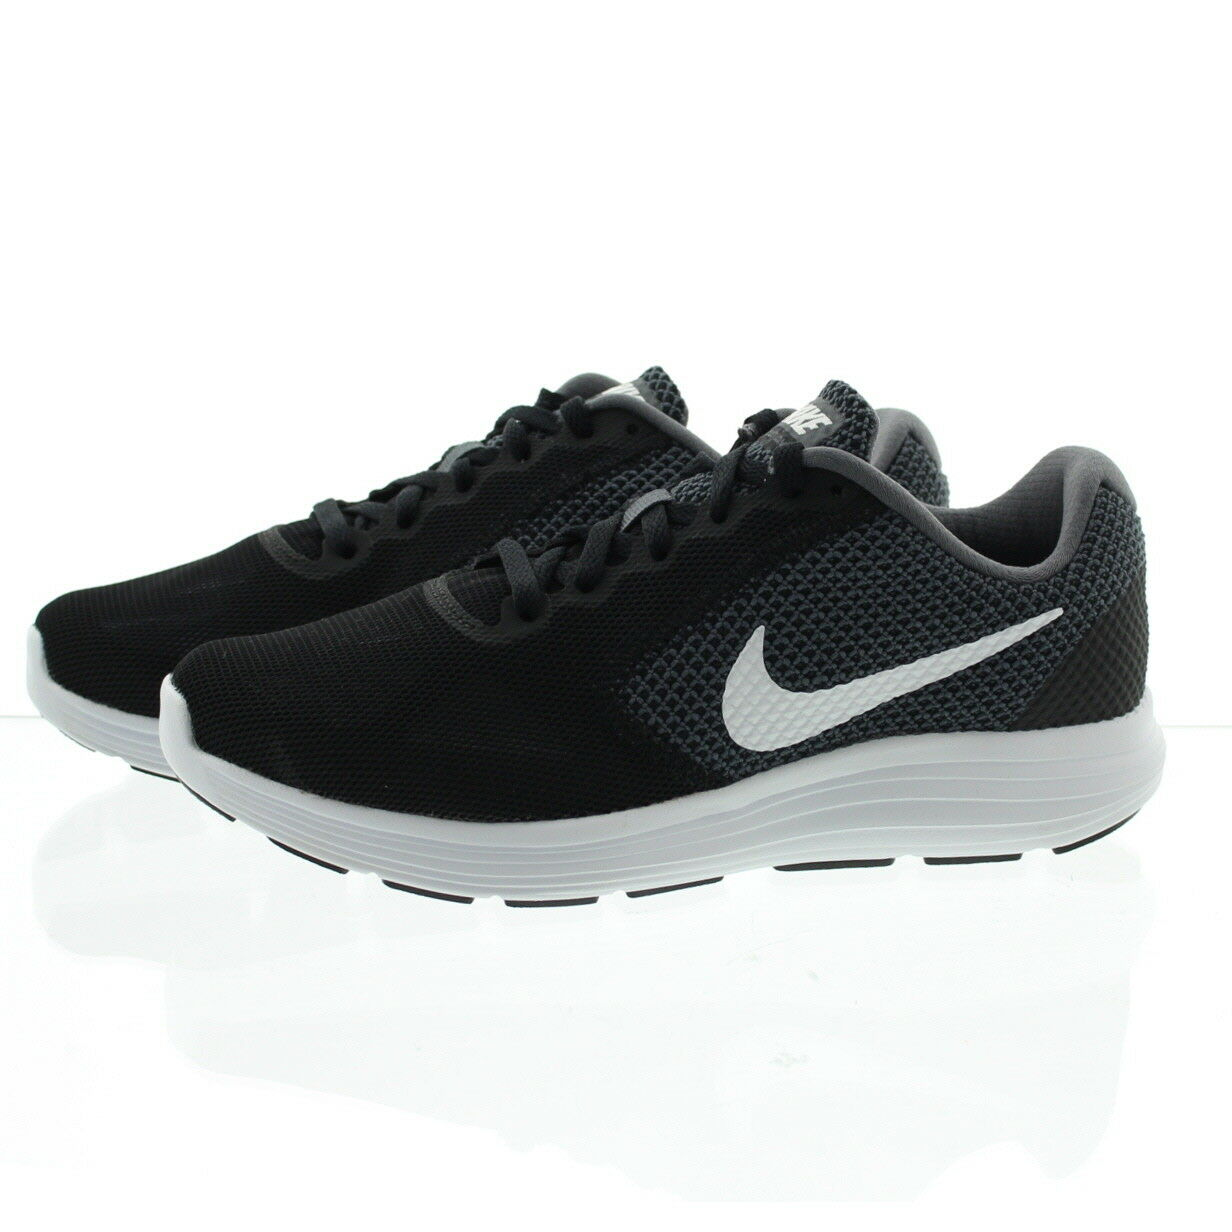 7c16c10996118 ... Nike 819302 Womens Revolution 3 Running Training Low Top Shoes Shoes  Shoes Sneakers f6b507 ...